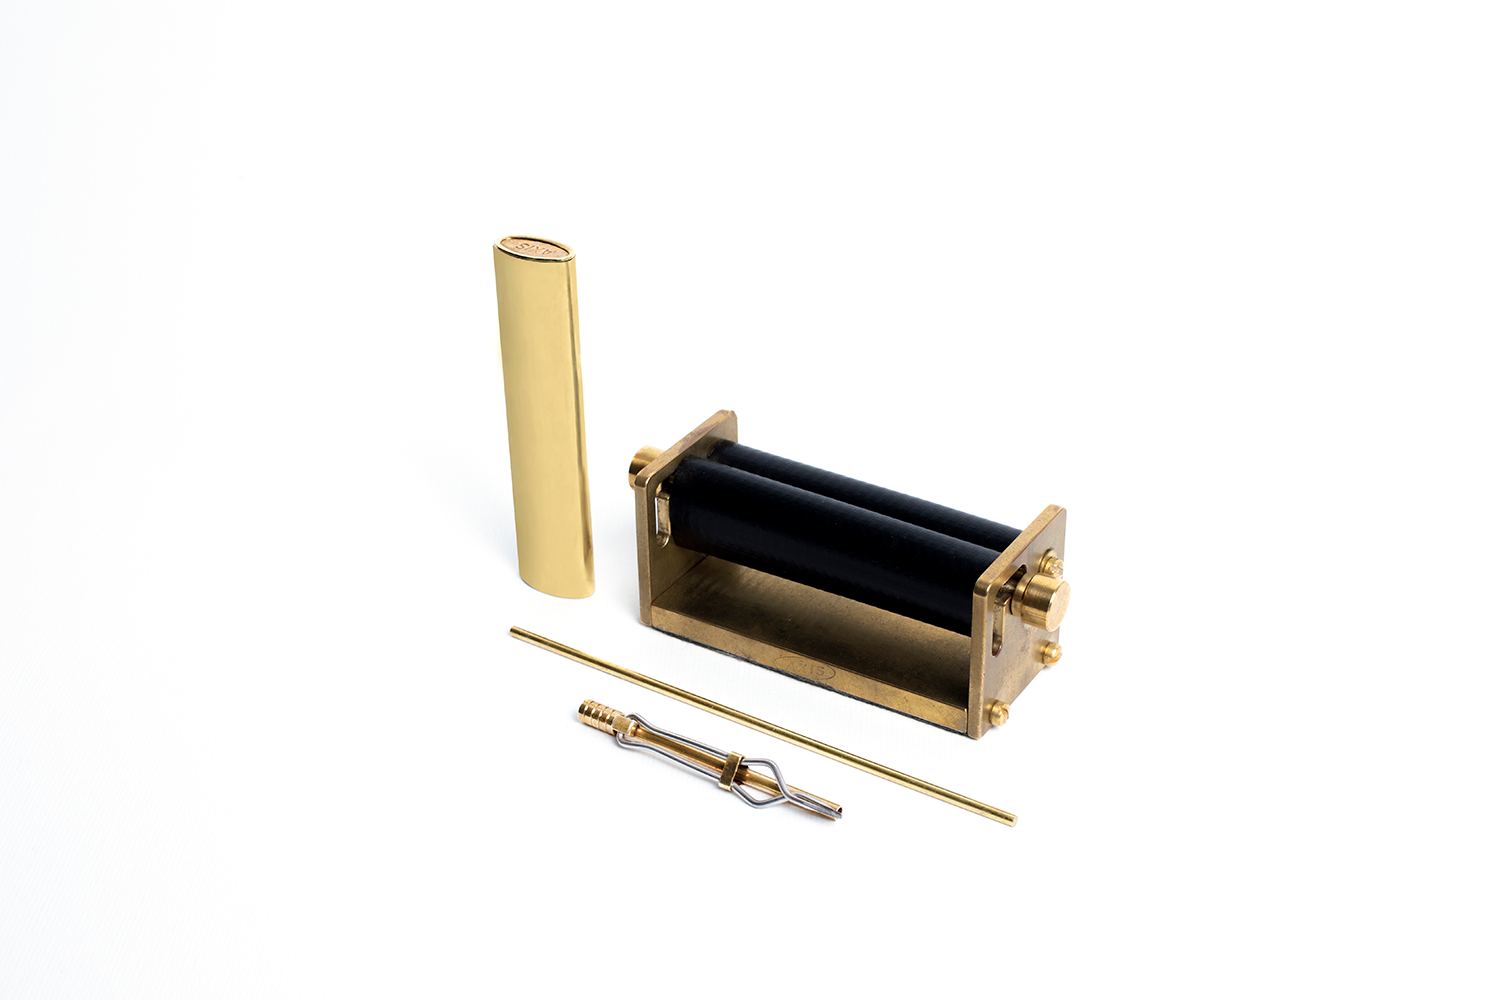 AXIS Smoking Products are elegant and sophisticated smoking accessories for smoking enthusiasts and connoisseurs. Our products are made from 100% Polished Brass and Tempered Stainless Steel.